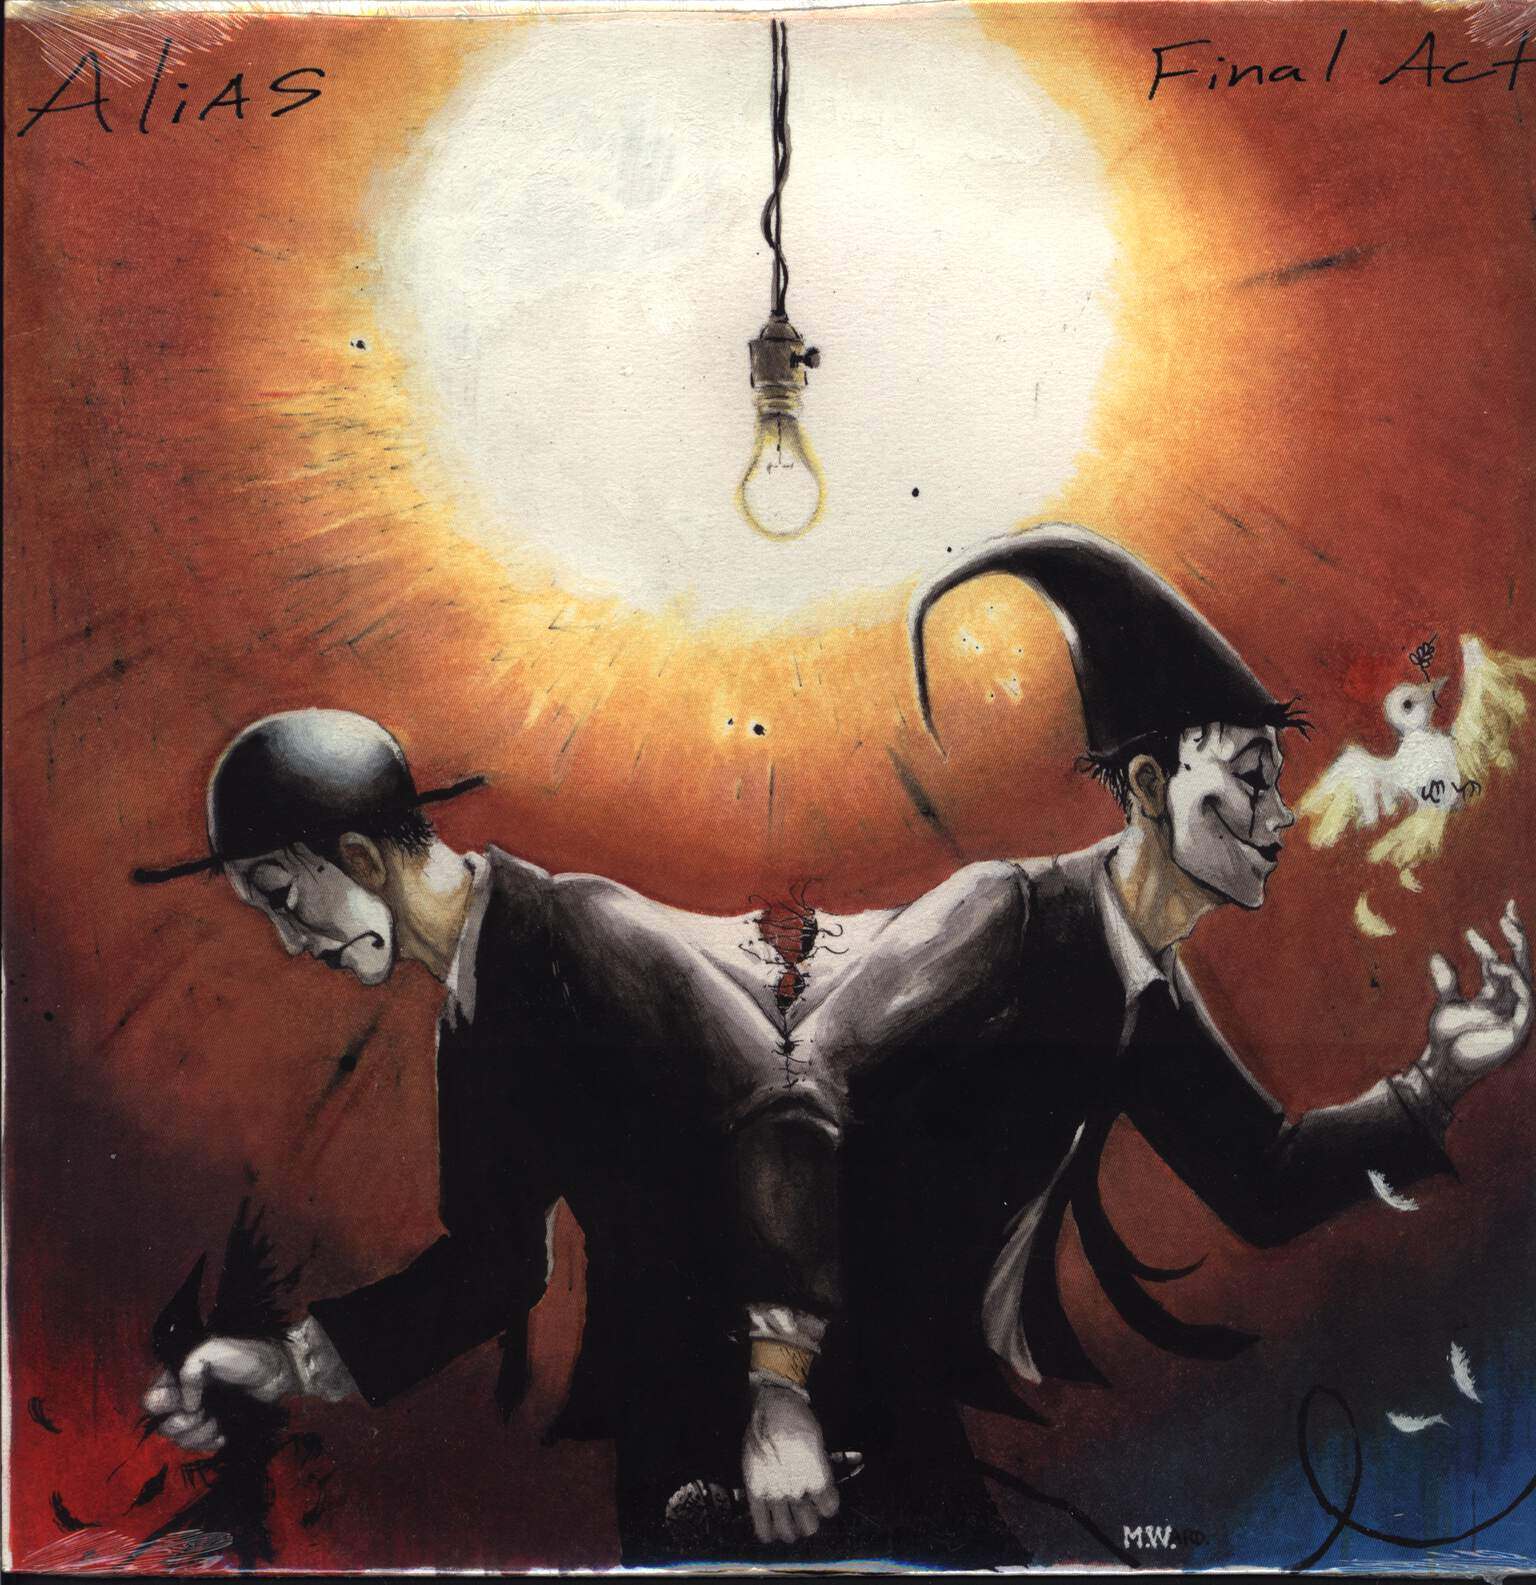 "Alias: Final Act, 12"" Maxi Single (Vinyl)"